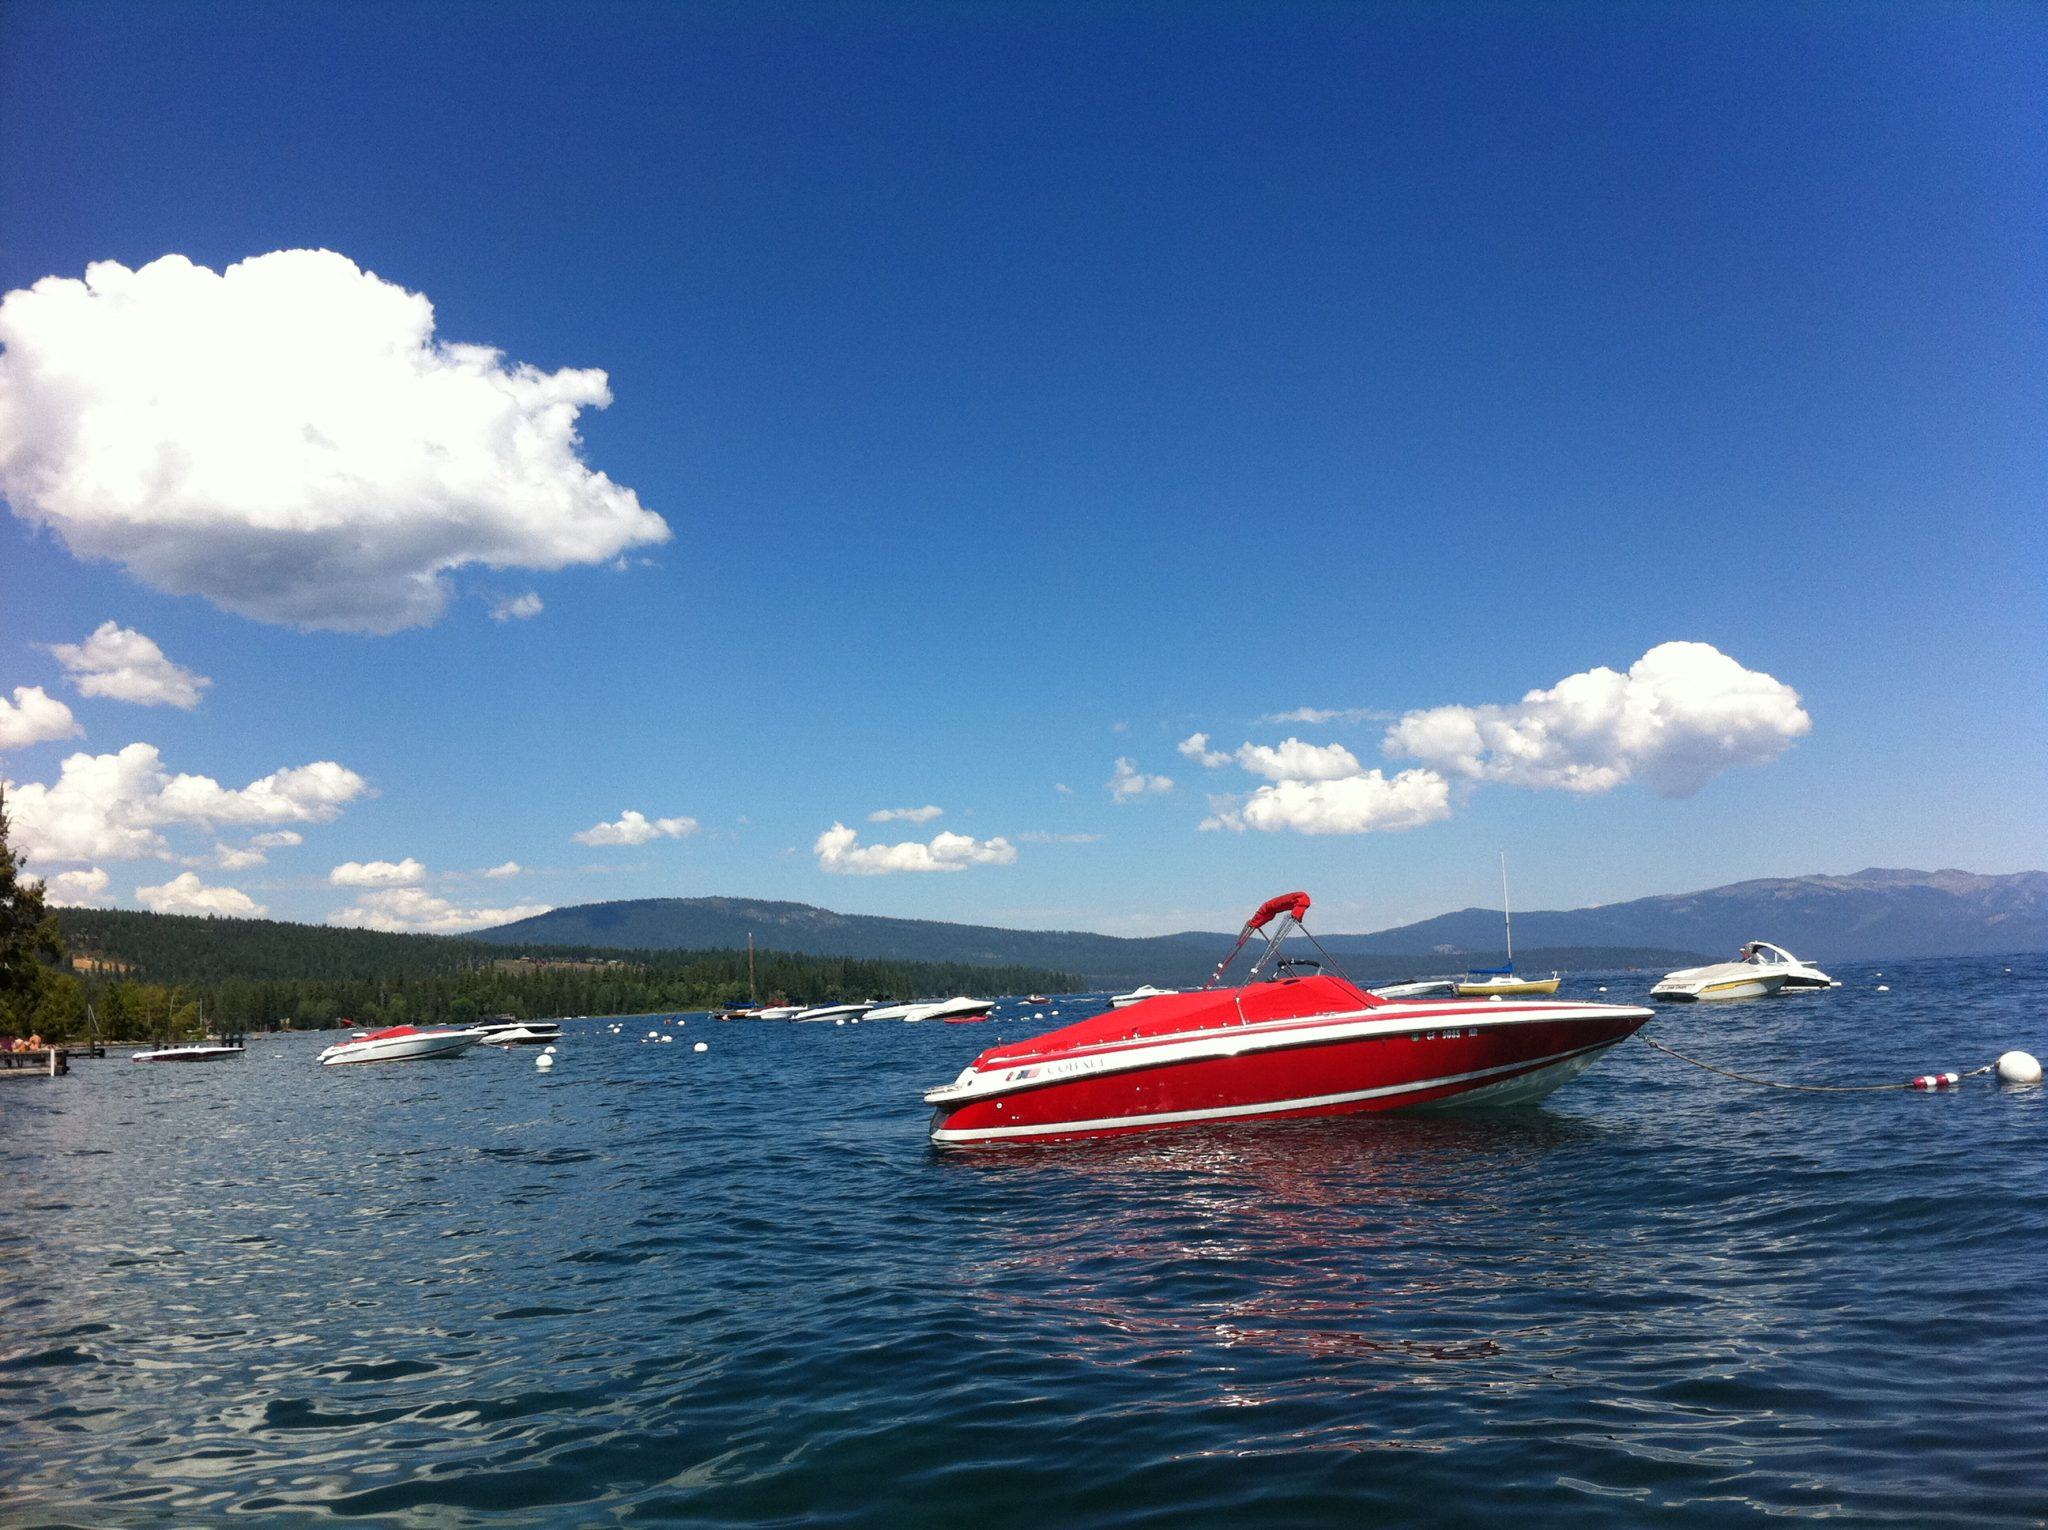 Red Boat on Lake Tahoe - what income level is considered rich